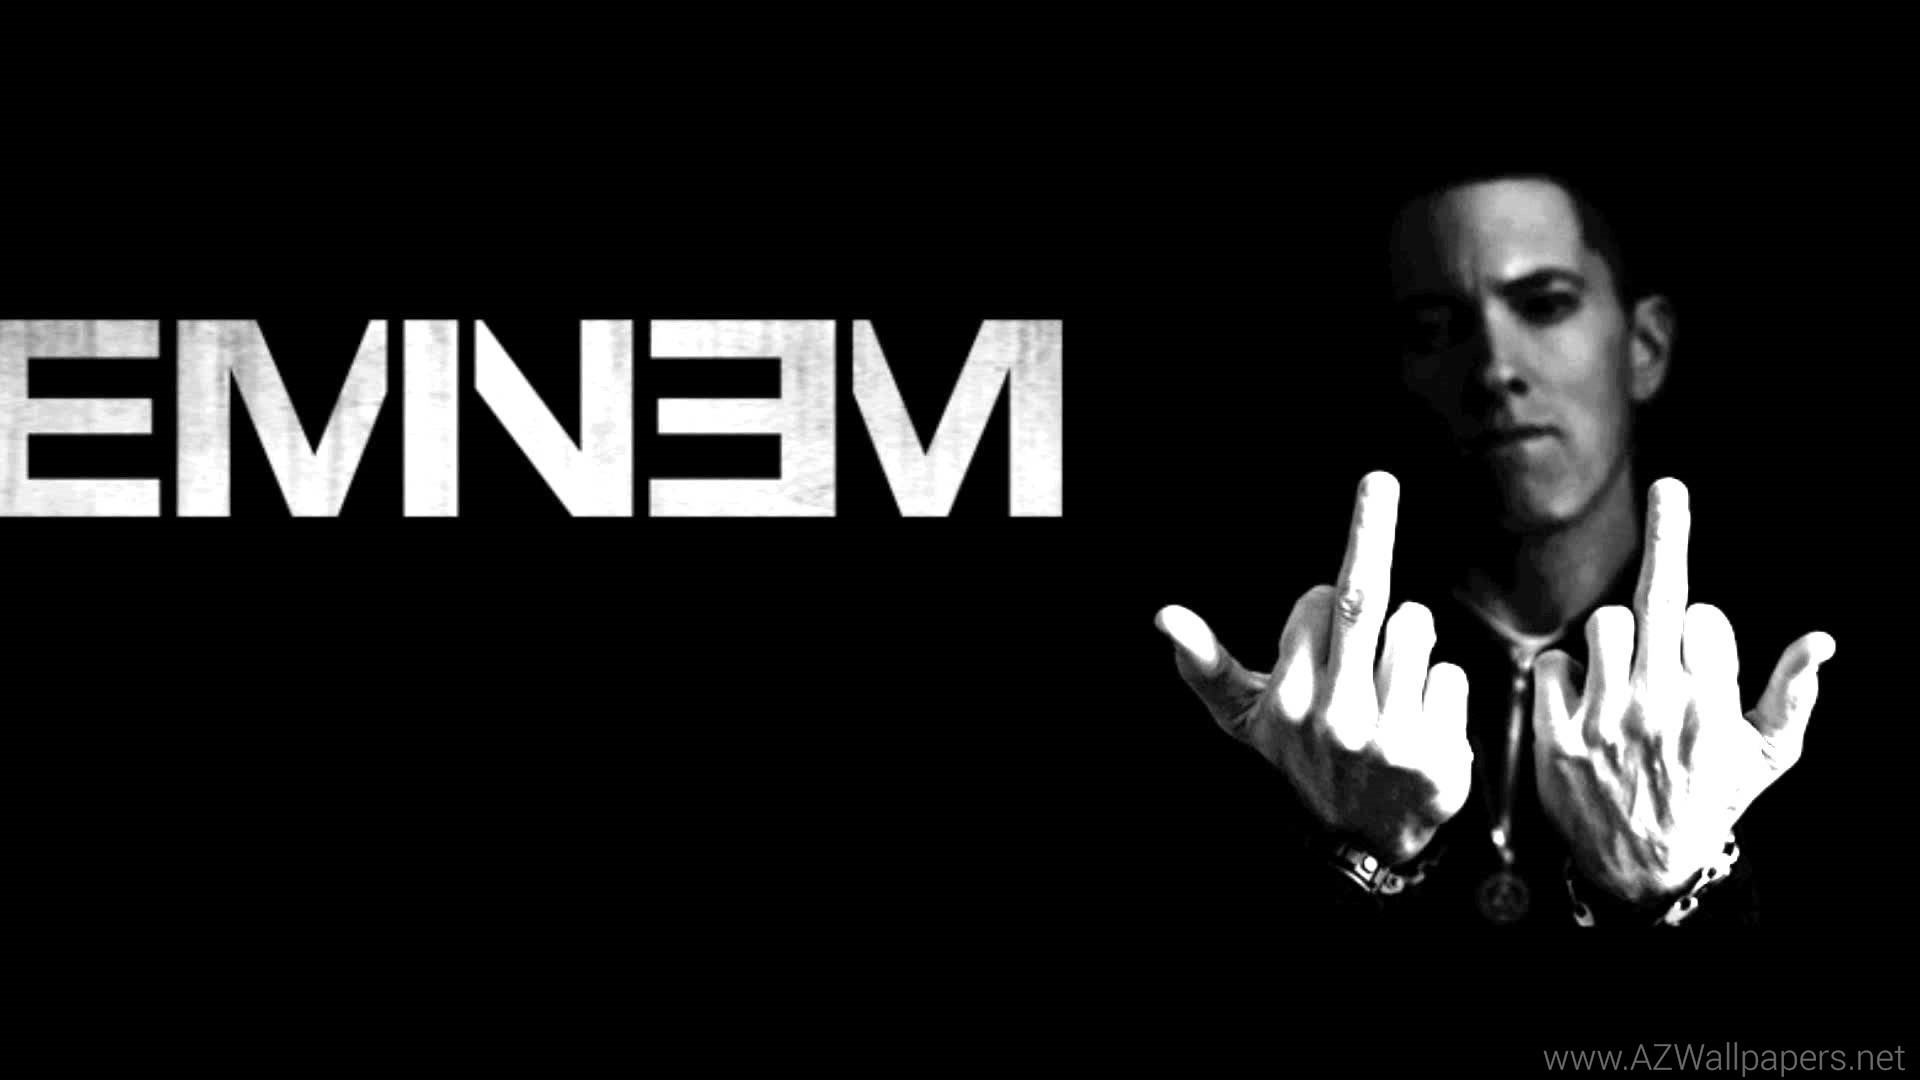 Eminem Hd Wallpapers 1080p 77 Images